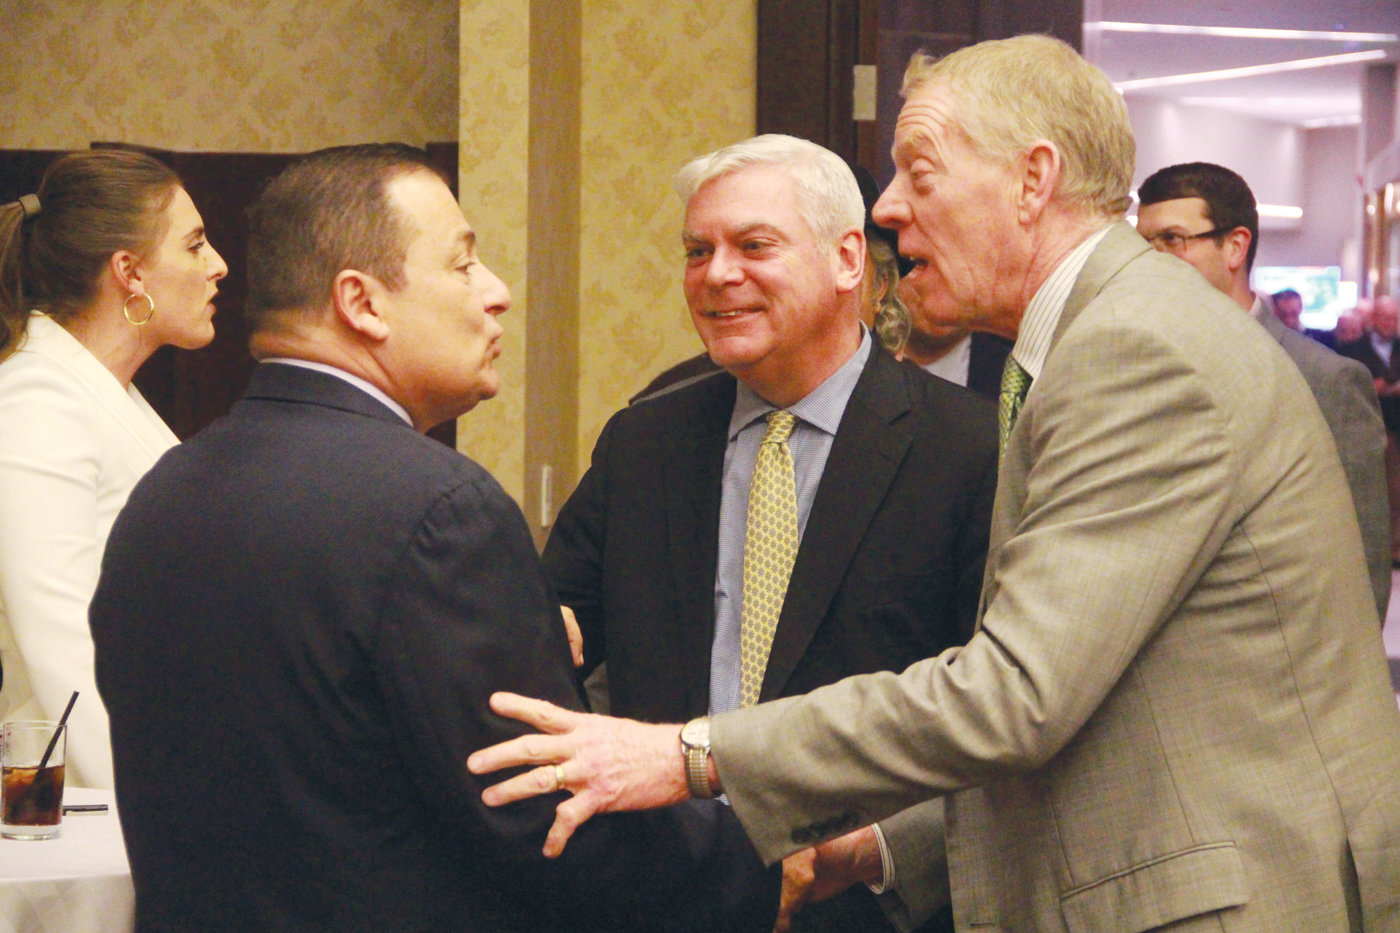 AMONG FRIENDS: Rep. K. Joseph Shekarchi greets Scott Avedisian, former Warwick mayor and president and CEO of the Rhode Island Public Transit Authority, and Peter Harrington at his fundraiser Tuesday.